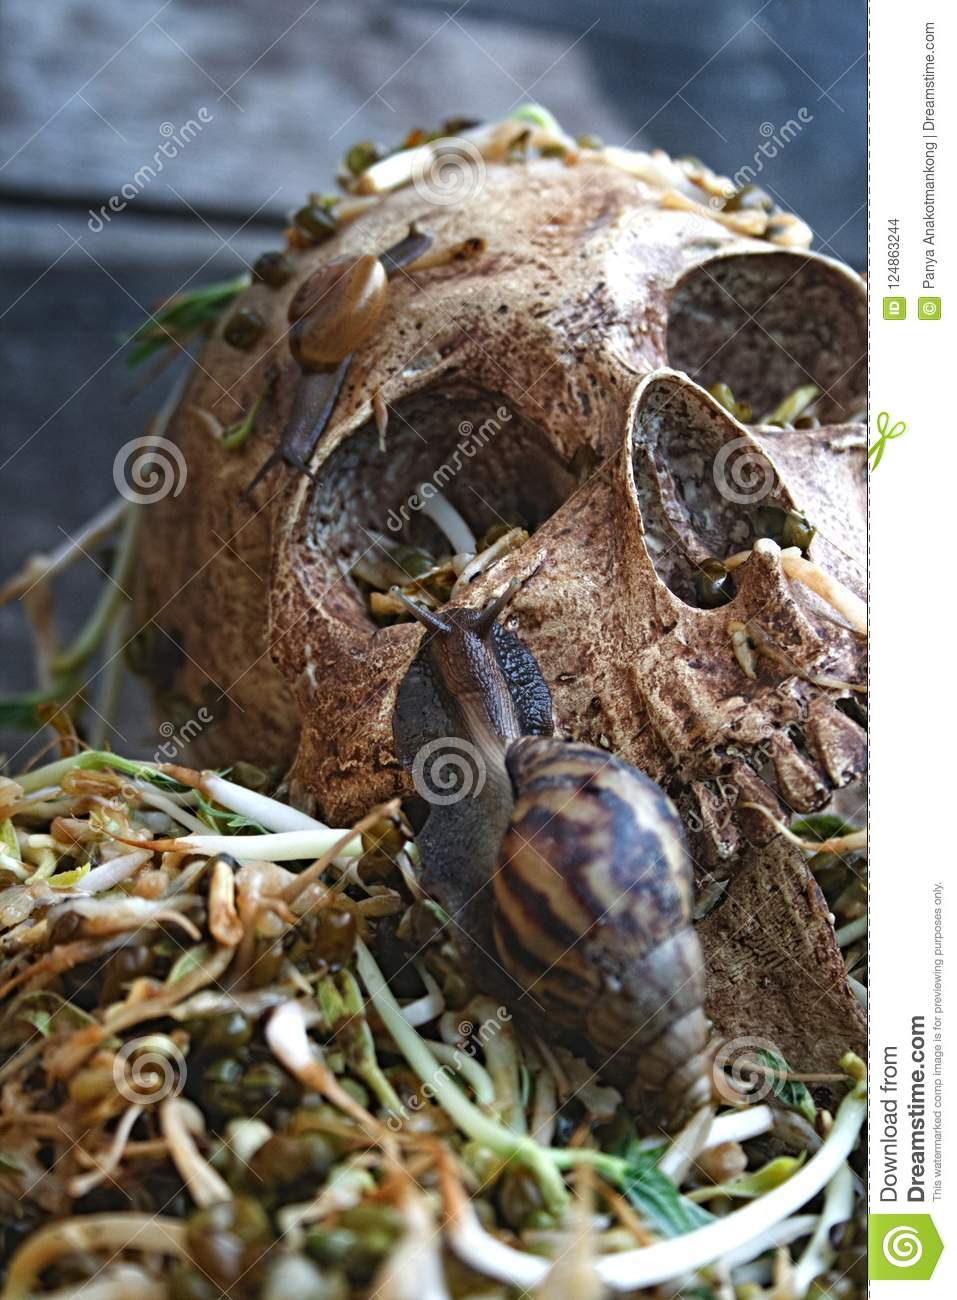 Death skull human with big snail crawl on face and rot bean sprouts some foul smelly.